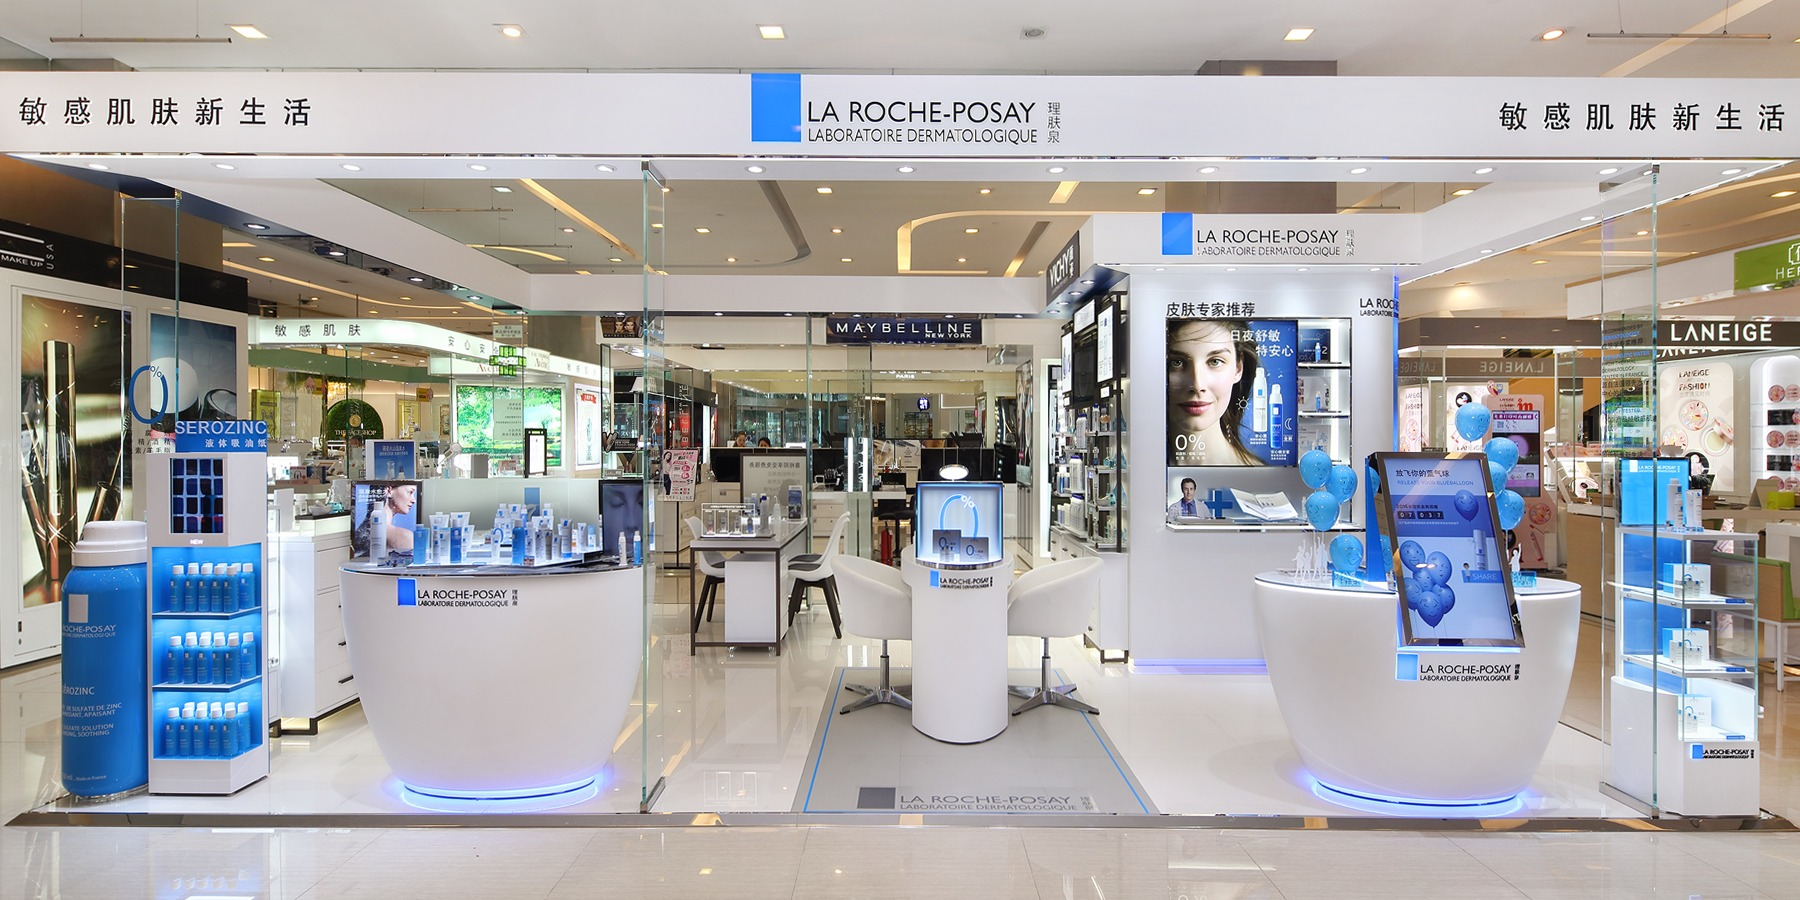 La Roche-Posay digital counter